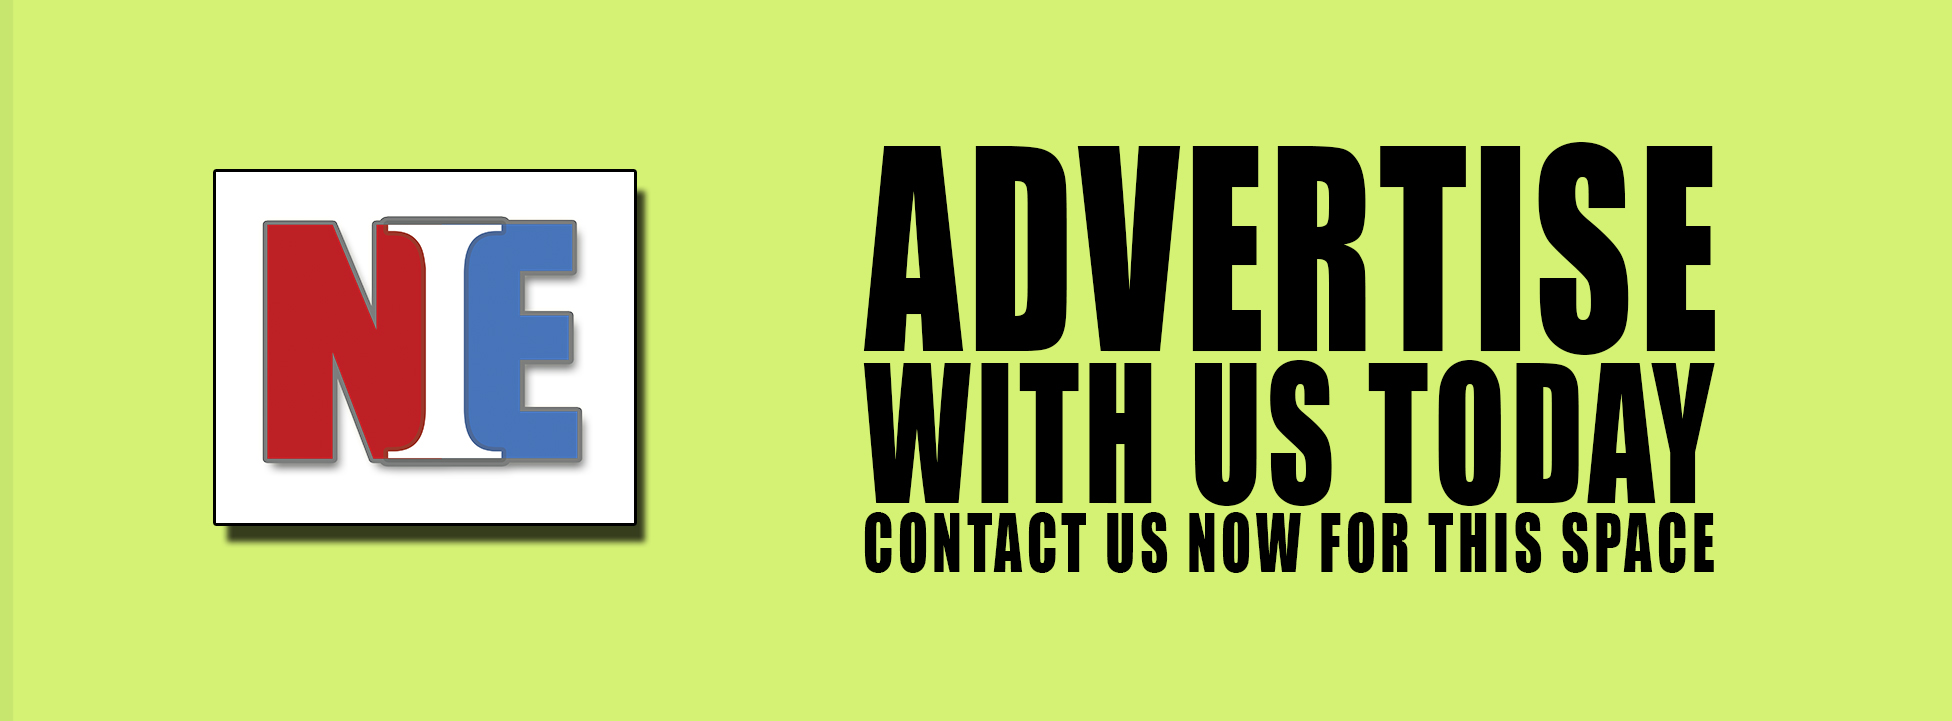 ADVERTISE WITH US NOW ON NEWS IN ENTERTAINMENT